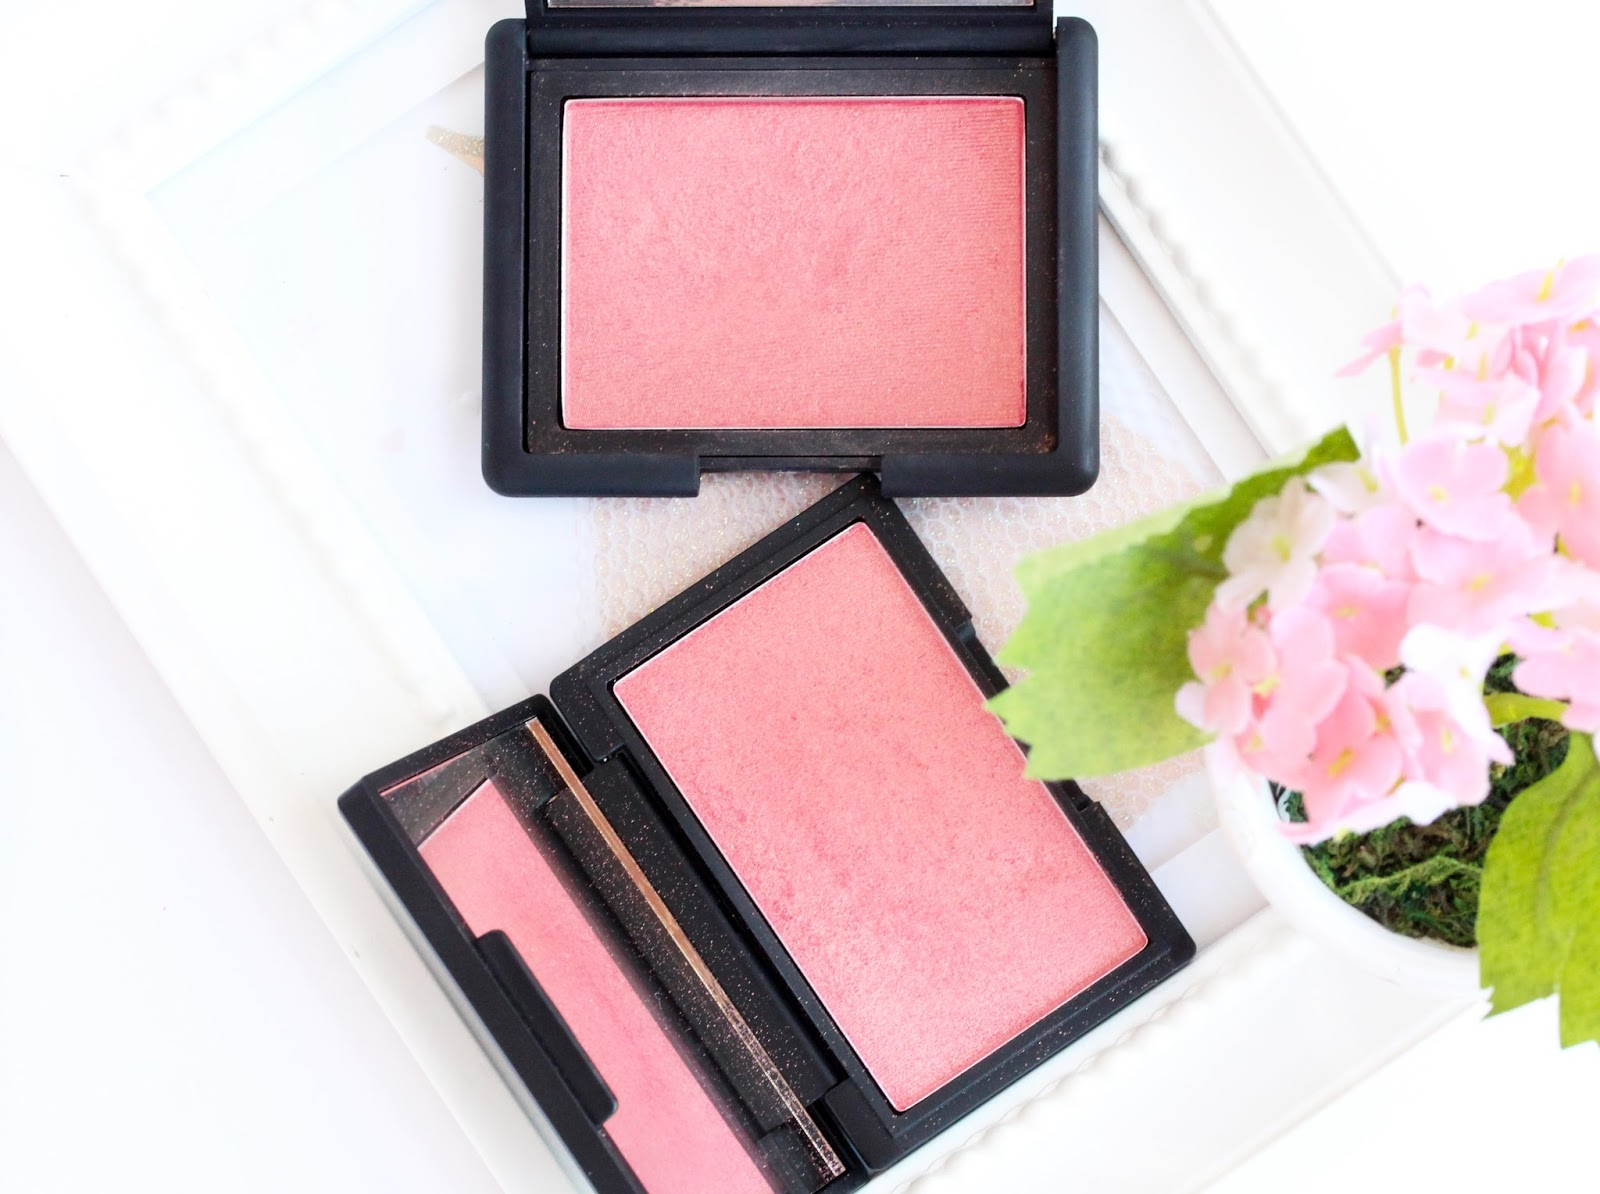 NARS Orgasm blush dupe Sleek Rose Gold